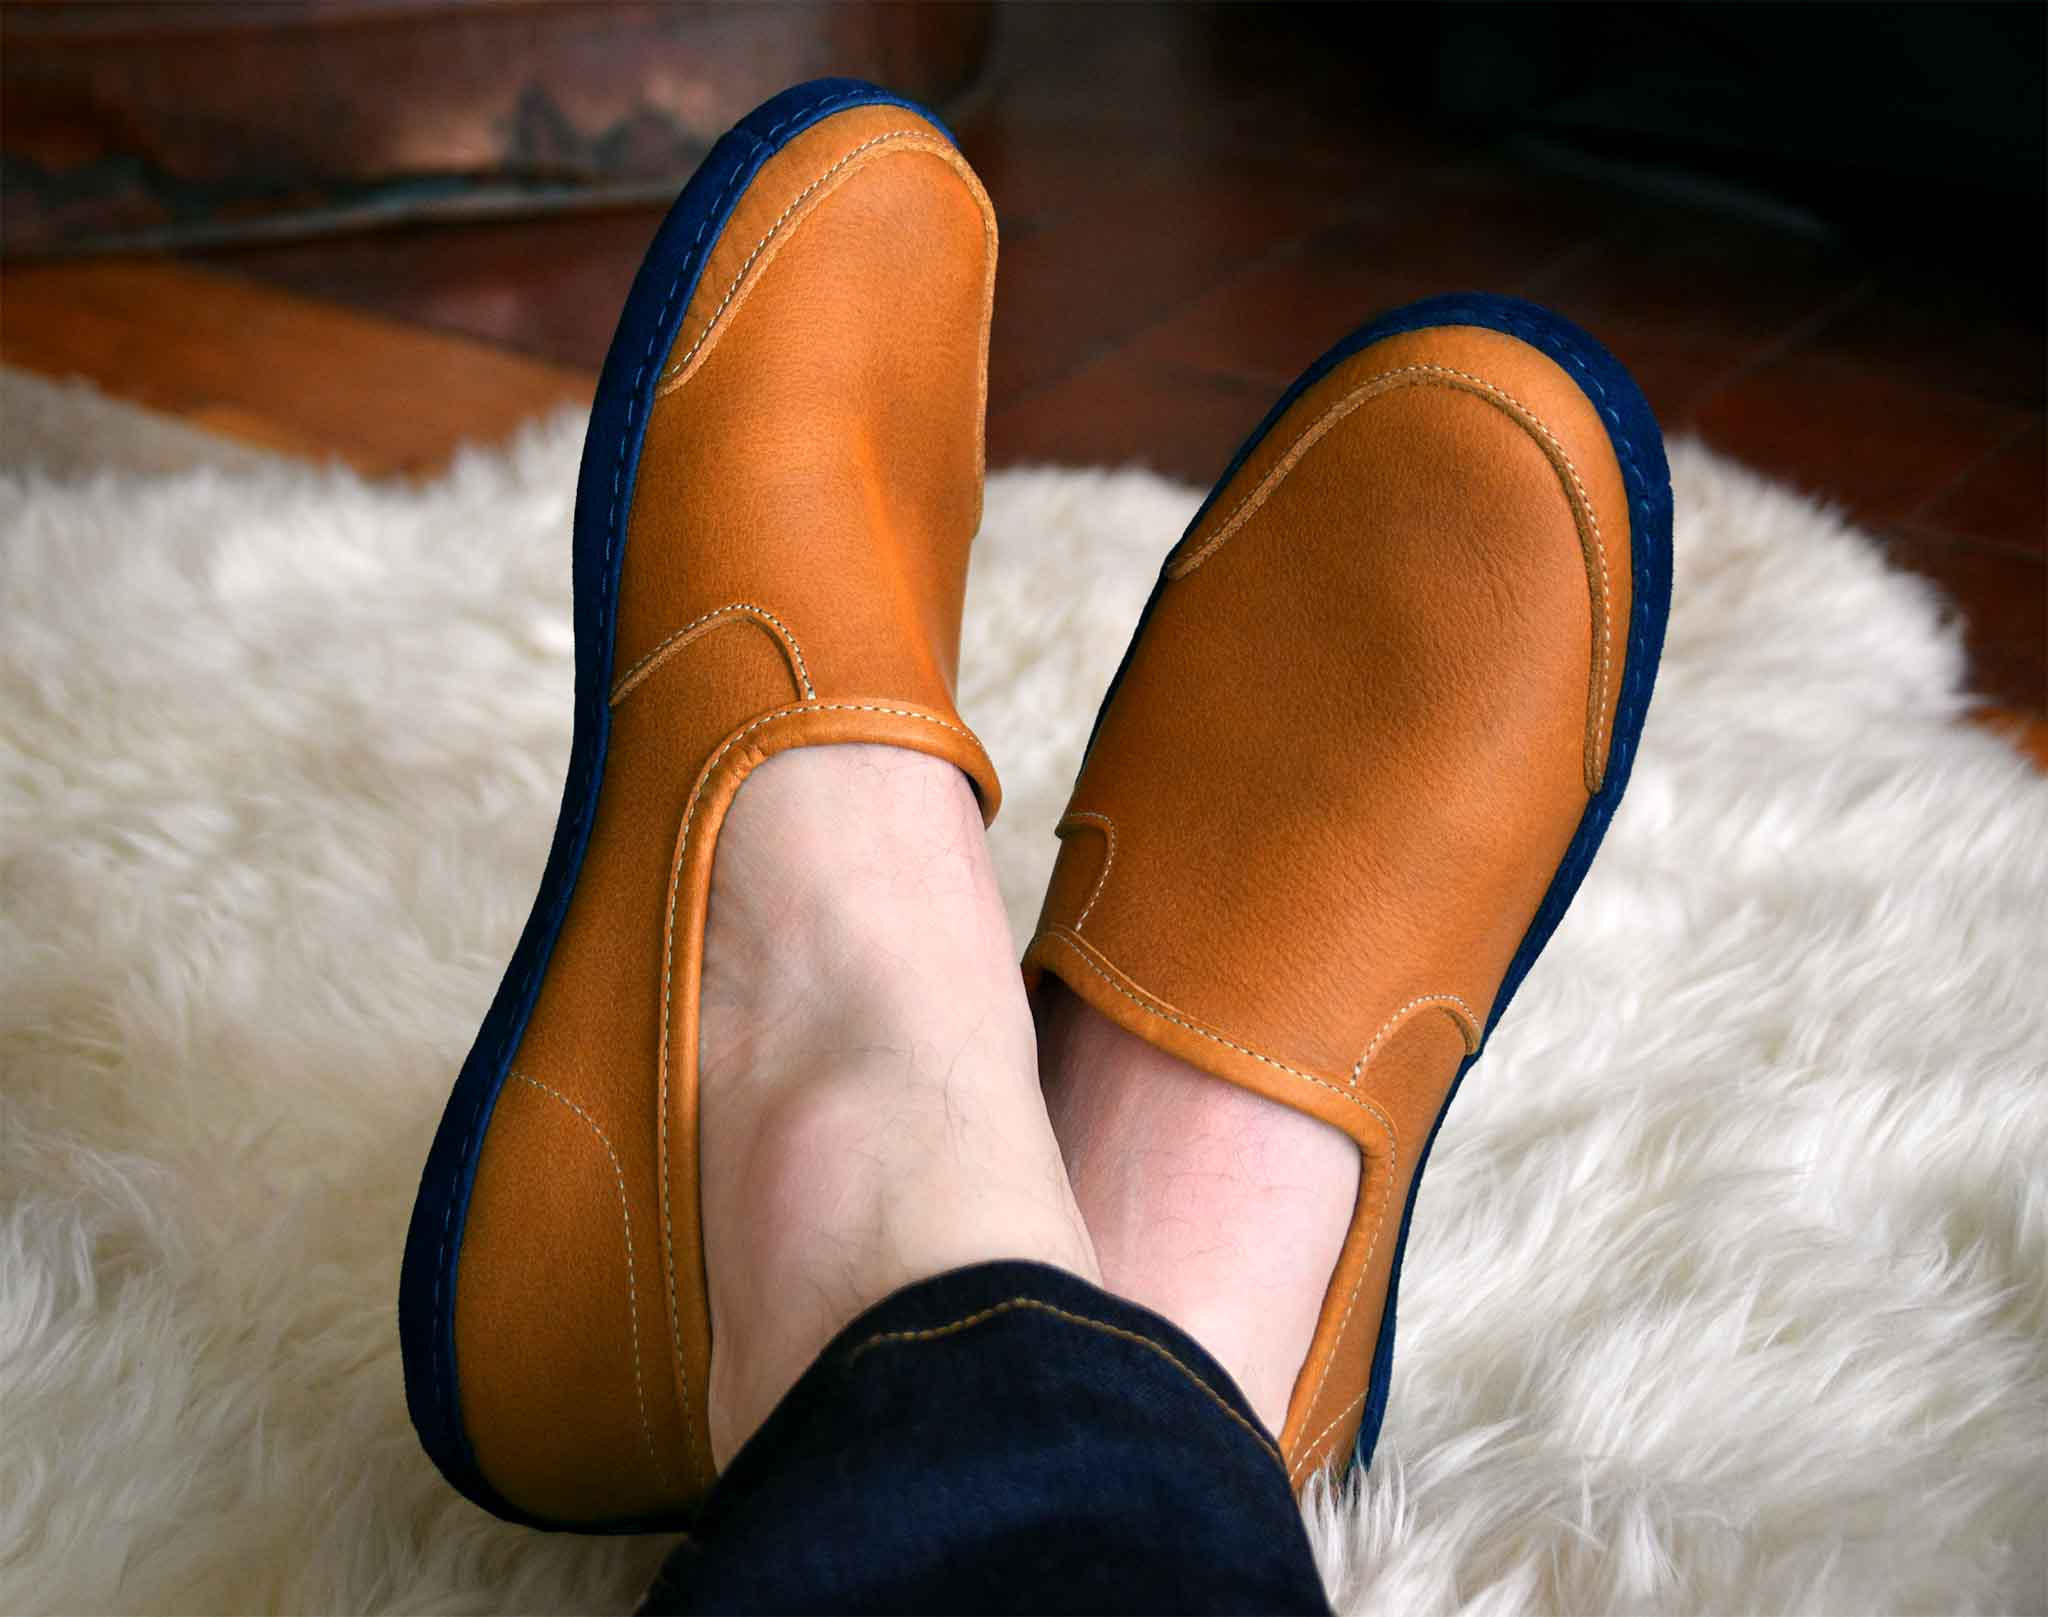 Vermont House Shoes: Loafer